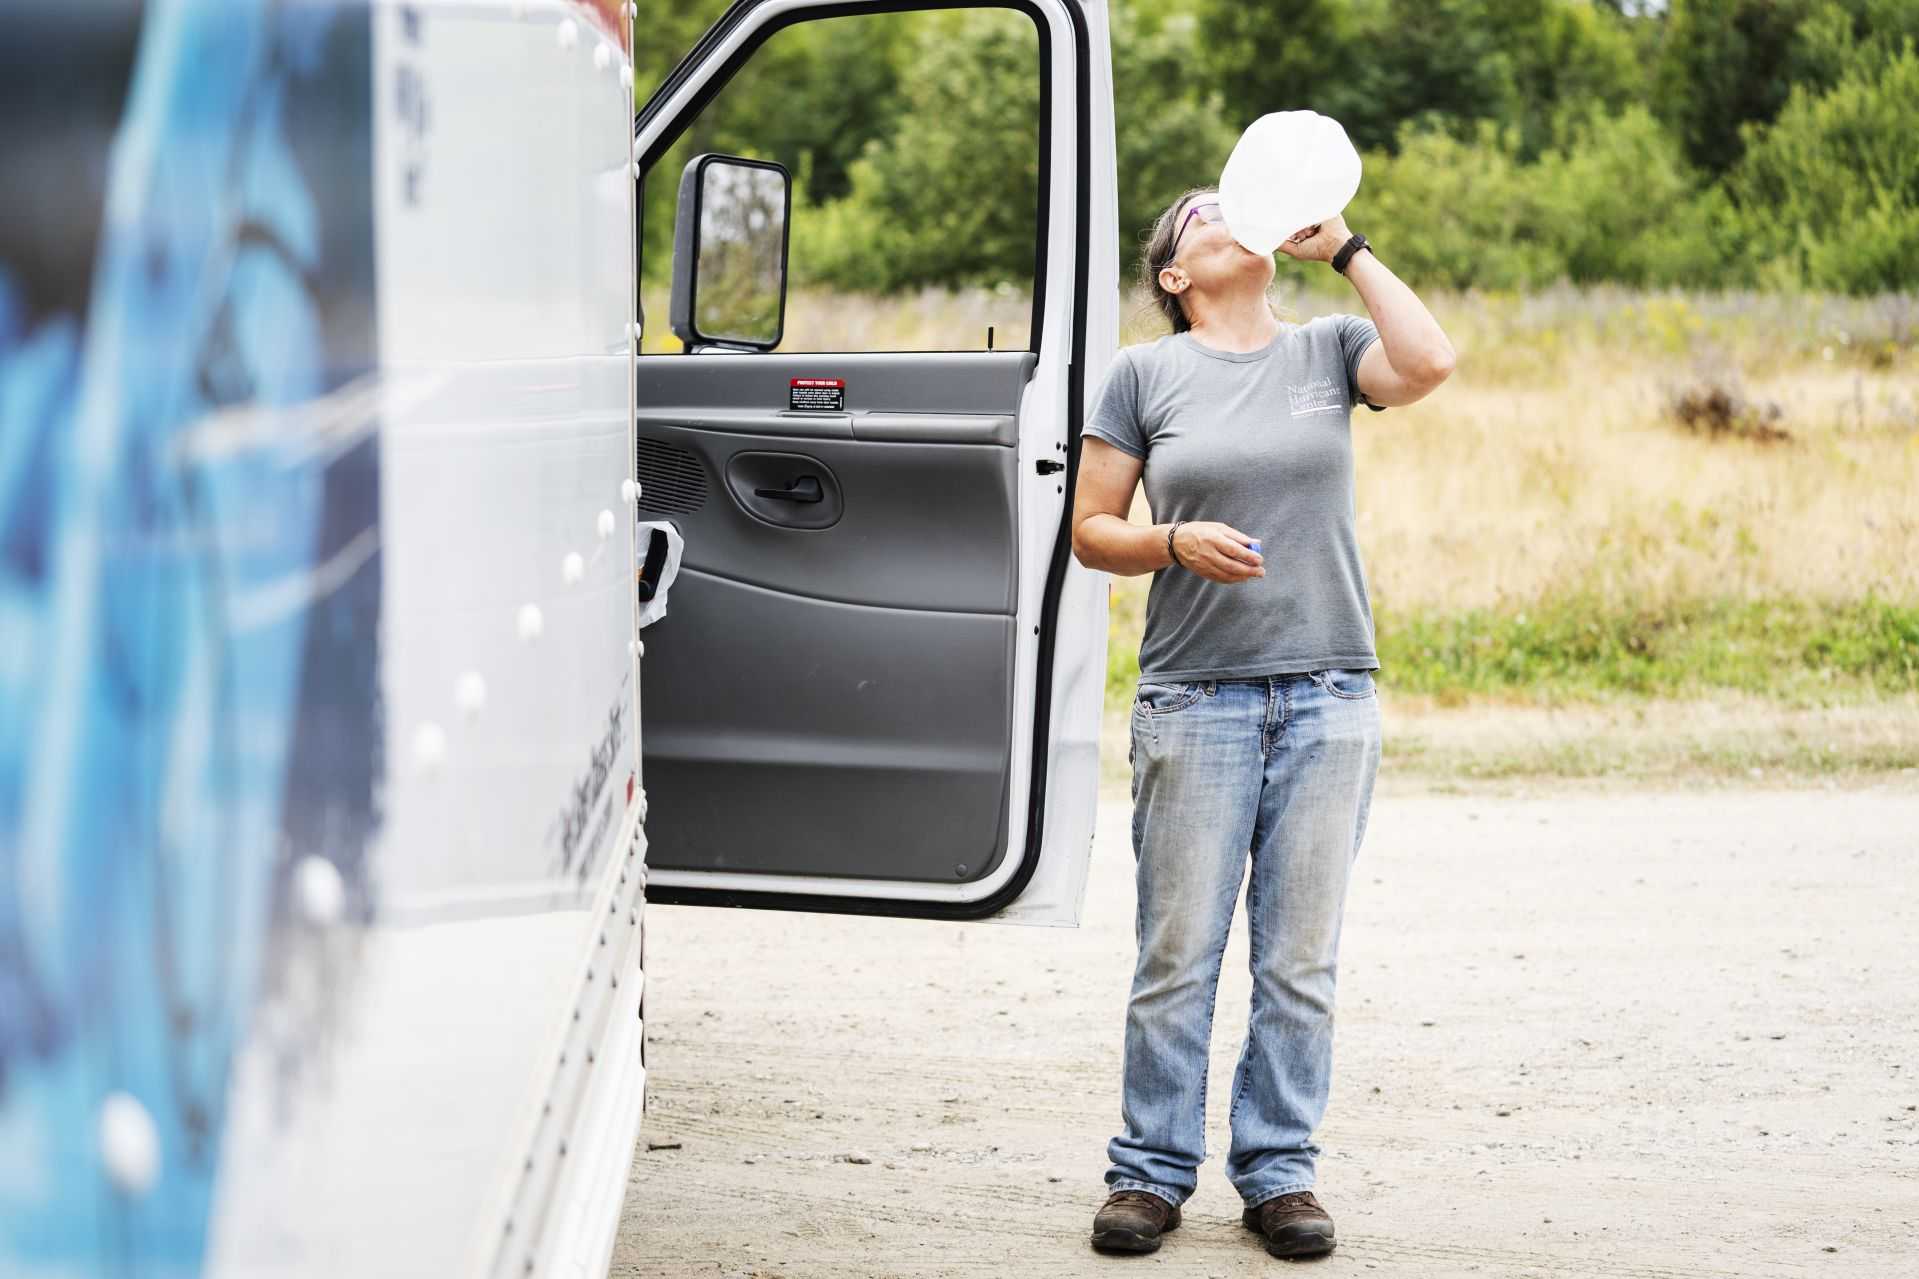 Eva Meltzer Murray Õ85 stops for a hydration break while loading a U-Haul full of recycling to be delivered mainland on August 7, 2019.A book author and essayist, sheÕs been a year-round resident of Matinicus Island for more than 30 years, starting as a teacher and now a leading island citizen involved in many island issues.